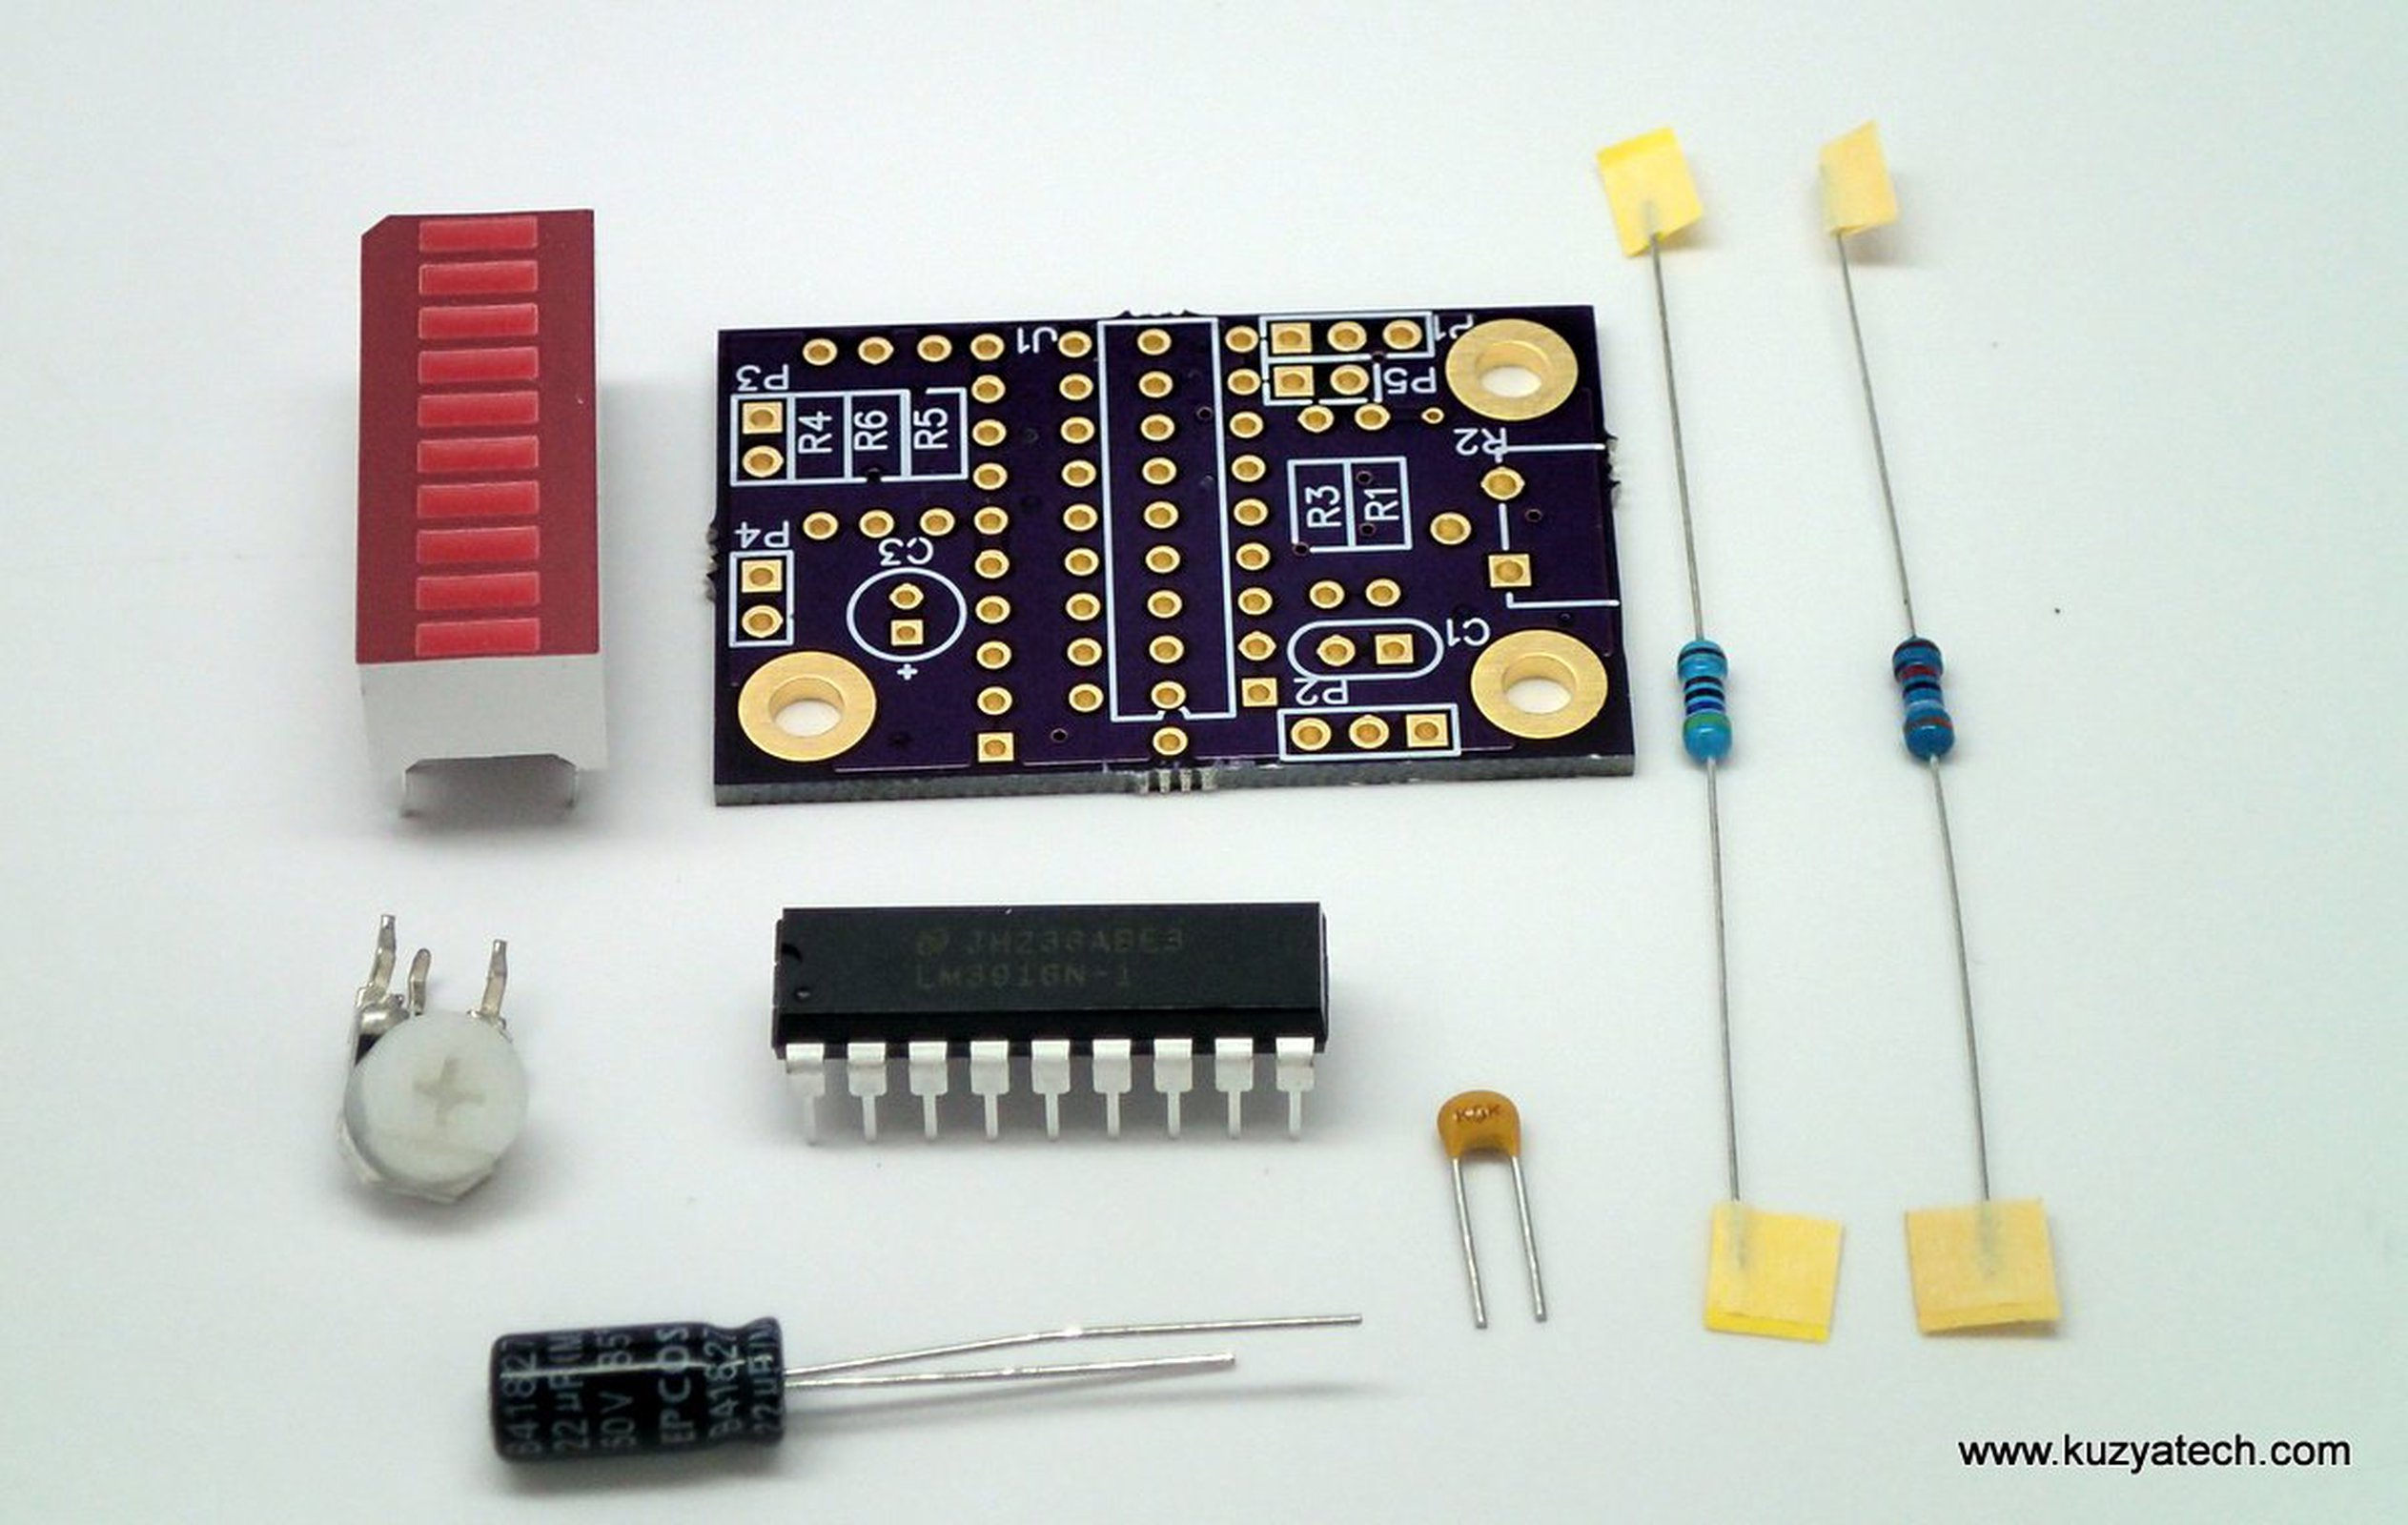 Lm3916 Led Bargraph Vu Meter Pick Your Color From Kuzyatech On Tindie How To Build 4 3